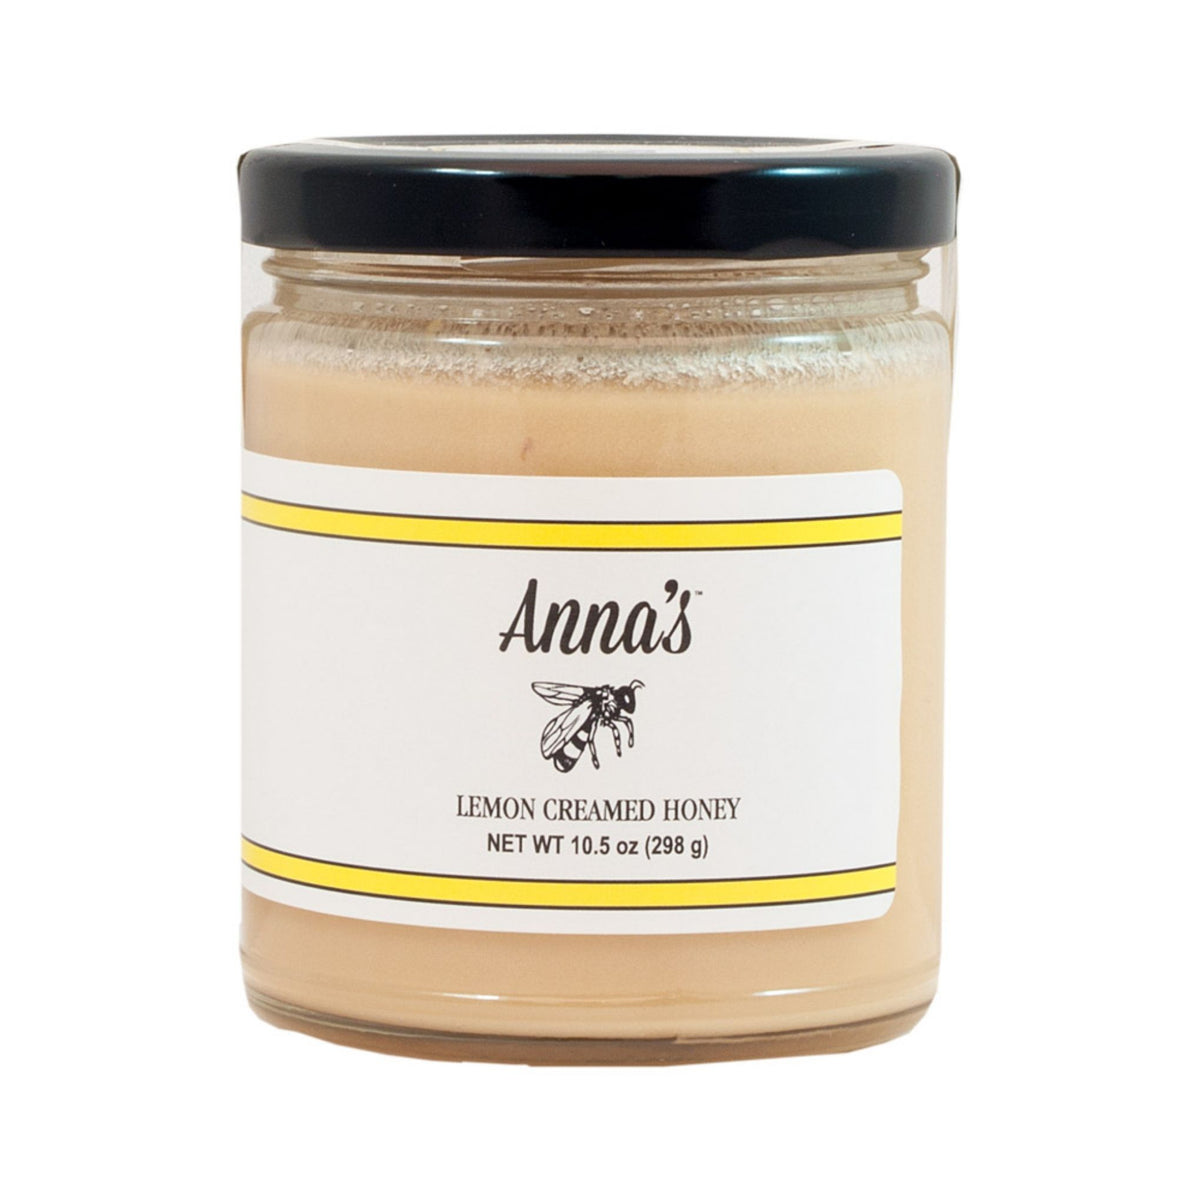 Anna's Lemon Creamed Honey in an Elegant 10.5-Ounce Glass Jar